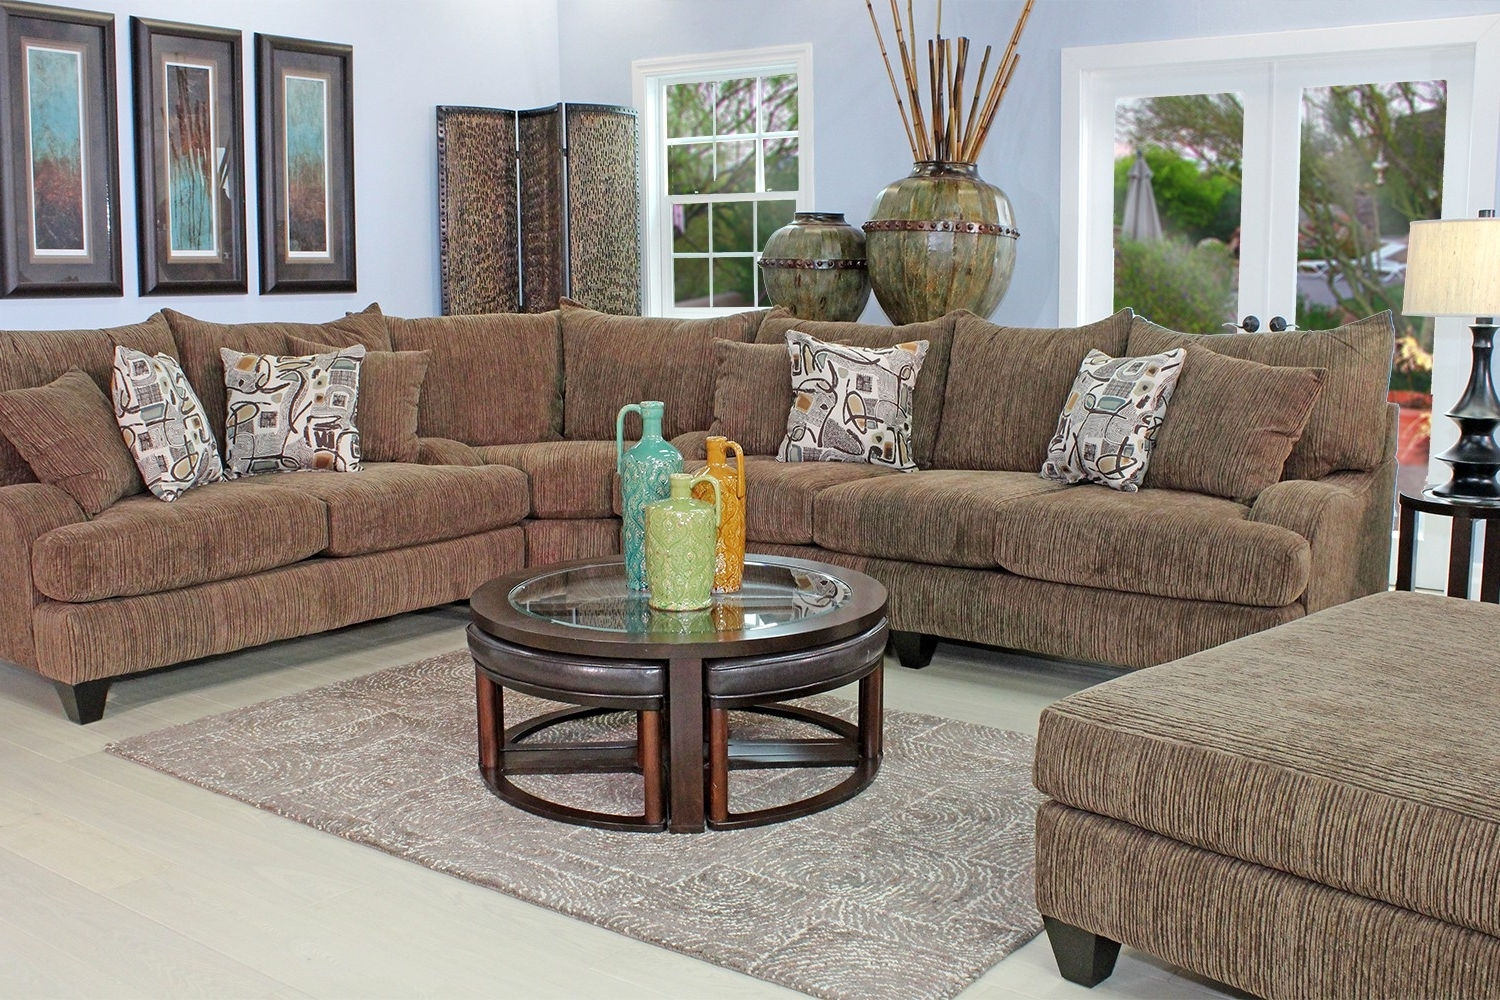 Living Room Sofa And Chair Sets With Regard To 2018 Furniture (View 9 of 20)